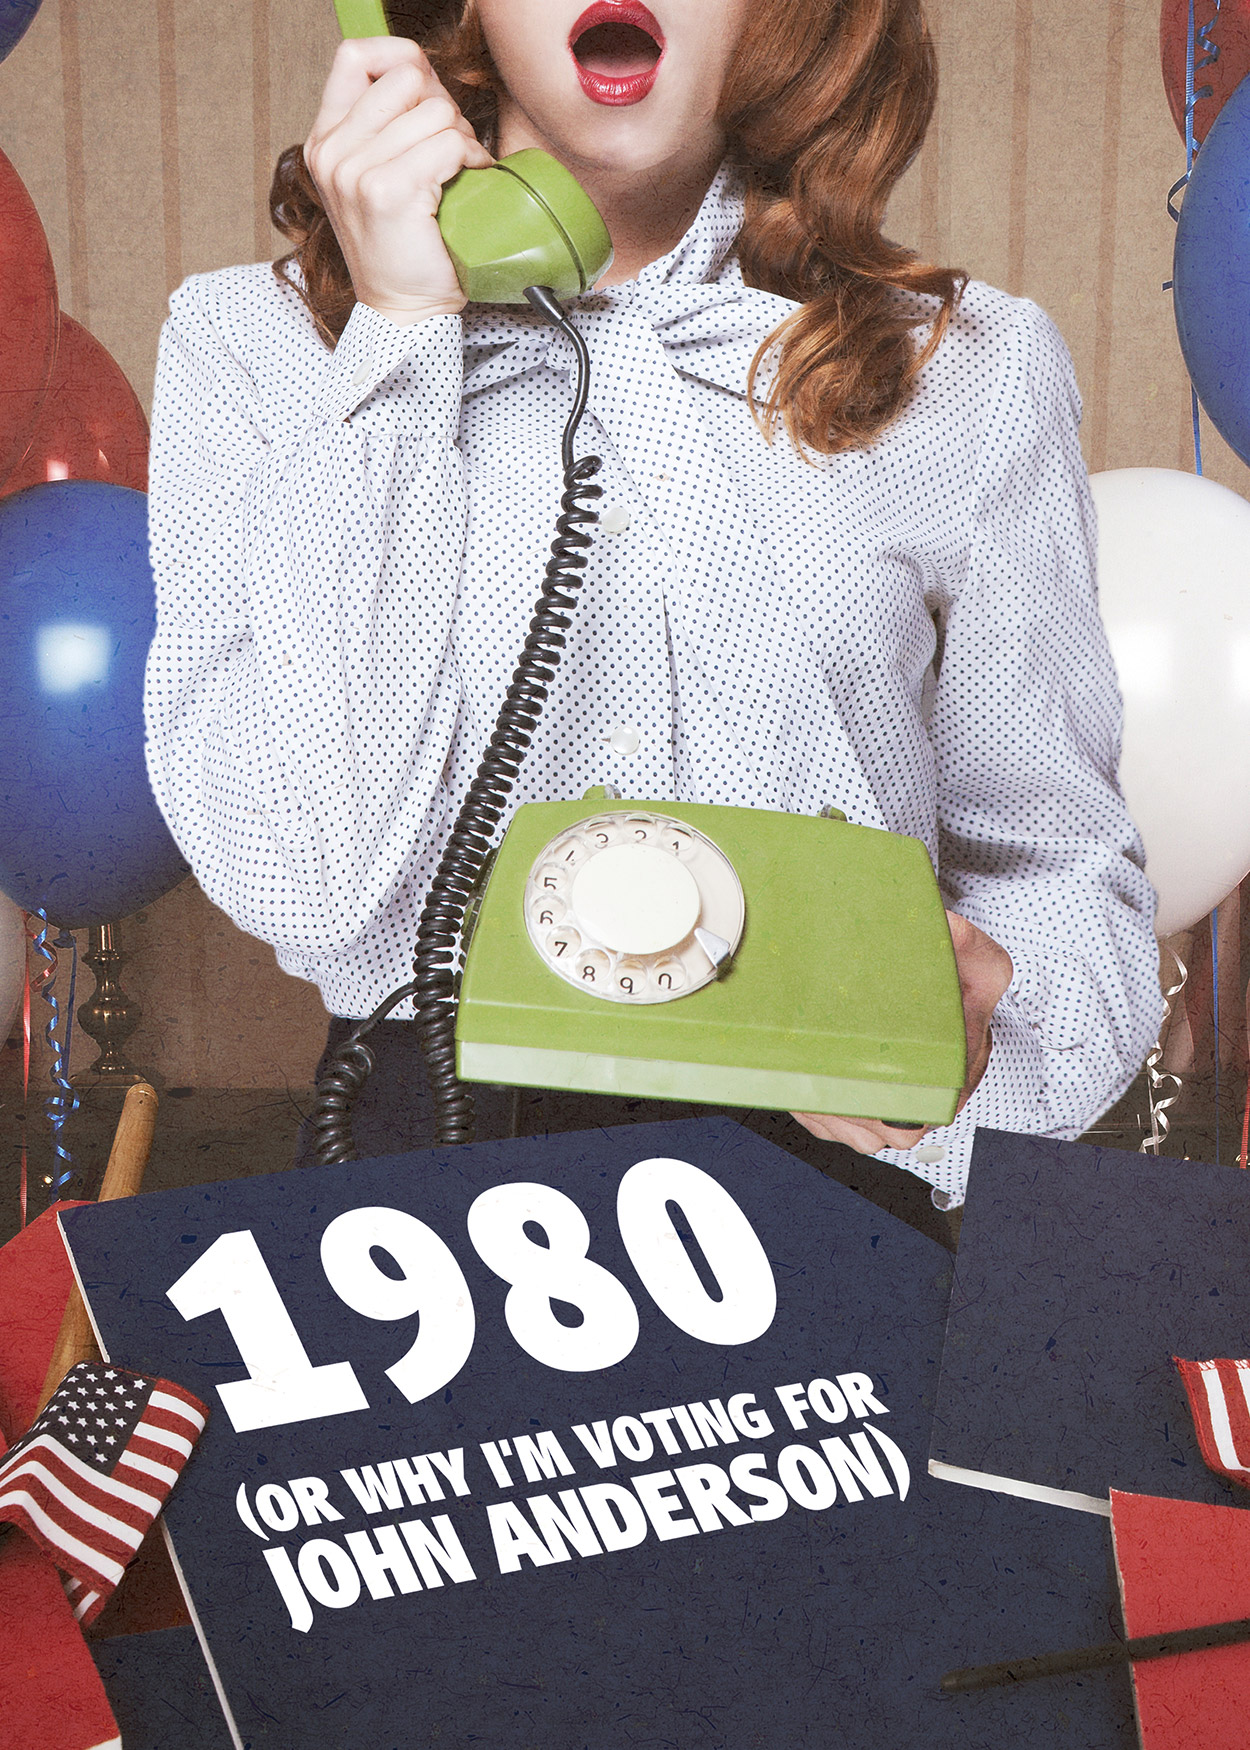 Key Art from 1980 (or Why I'm Voting for John Anderson) (2017). Image of a red-hair woman wearing a white blouse answering a lime green rotary phone. The image is cut off right at the woman's nose. Red, white and blue balloons are in the background.